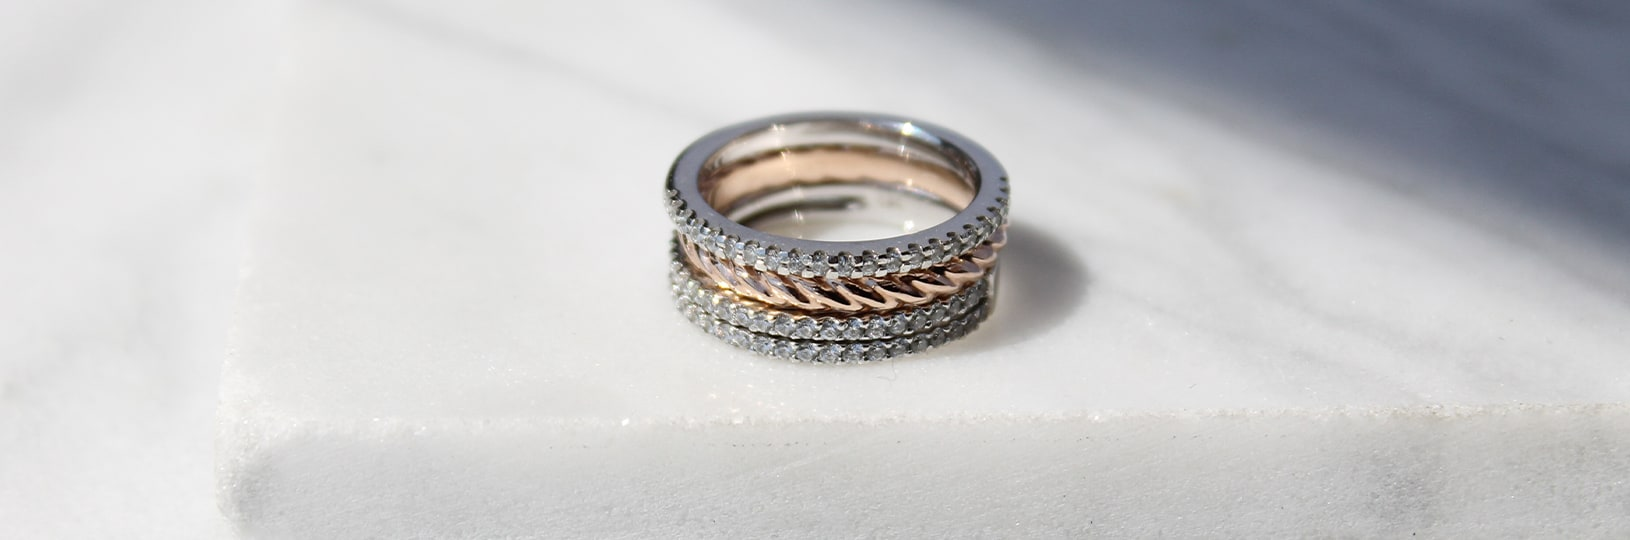 Right hand ring stack